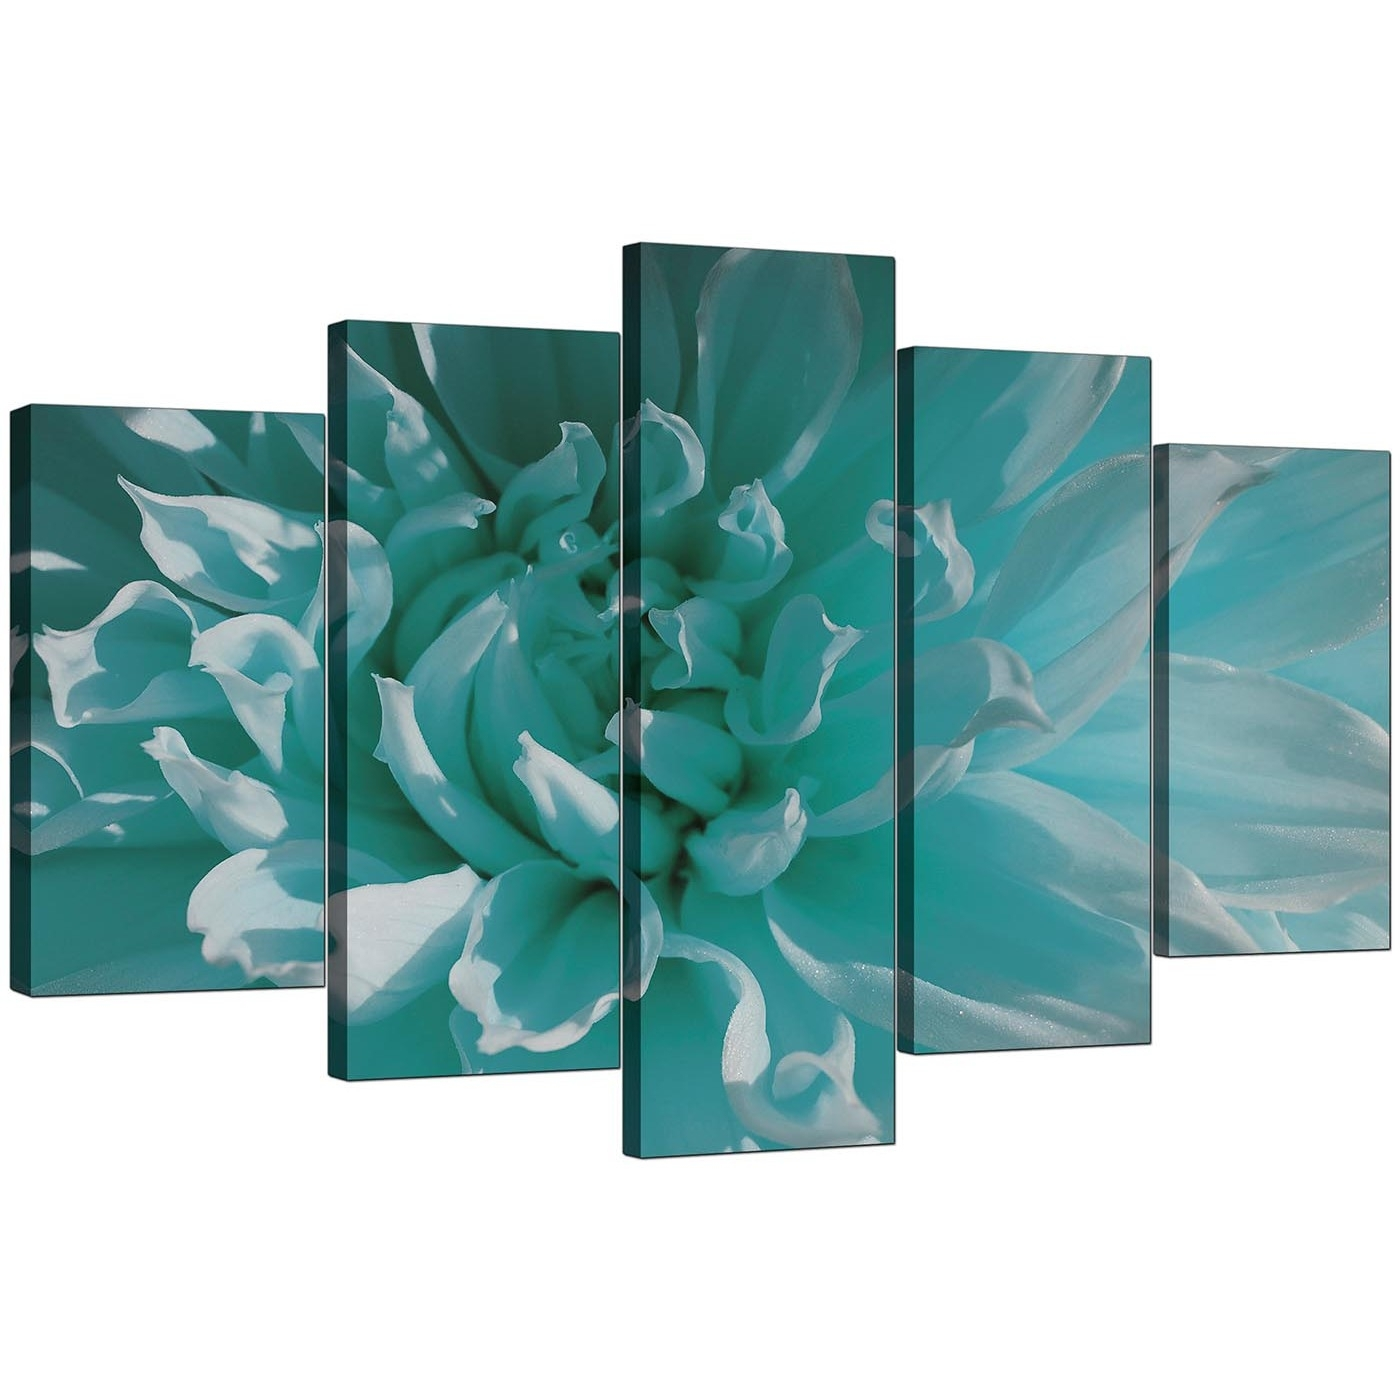 Extra Large Flower Canvas Wall Art 5 Piece In Teal in Teal Wall Art (Image 8 of 20)